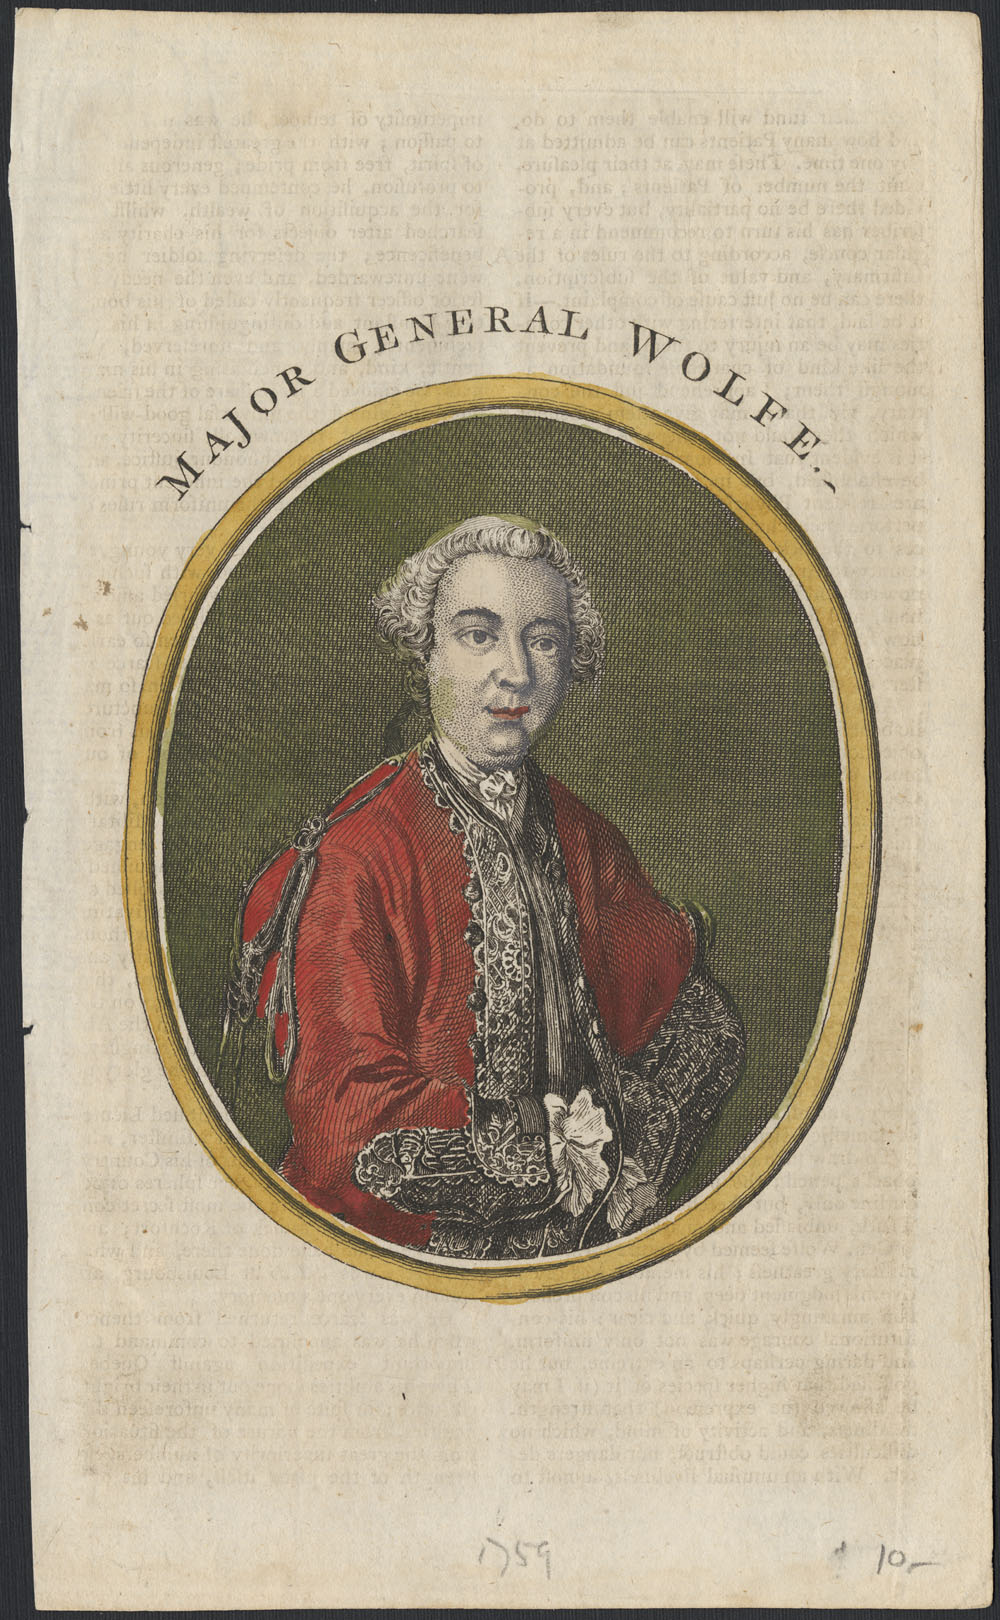 major general james wolfe essay Home » essay » general 5 major-general james wolfe bmw group death as a major player in romeo and juliet a new group analysis of the general.